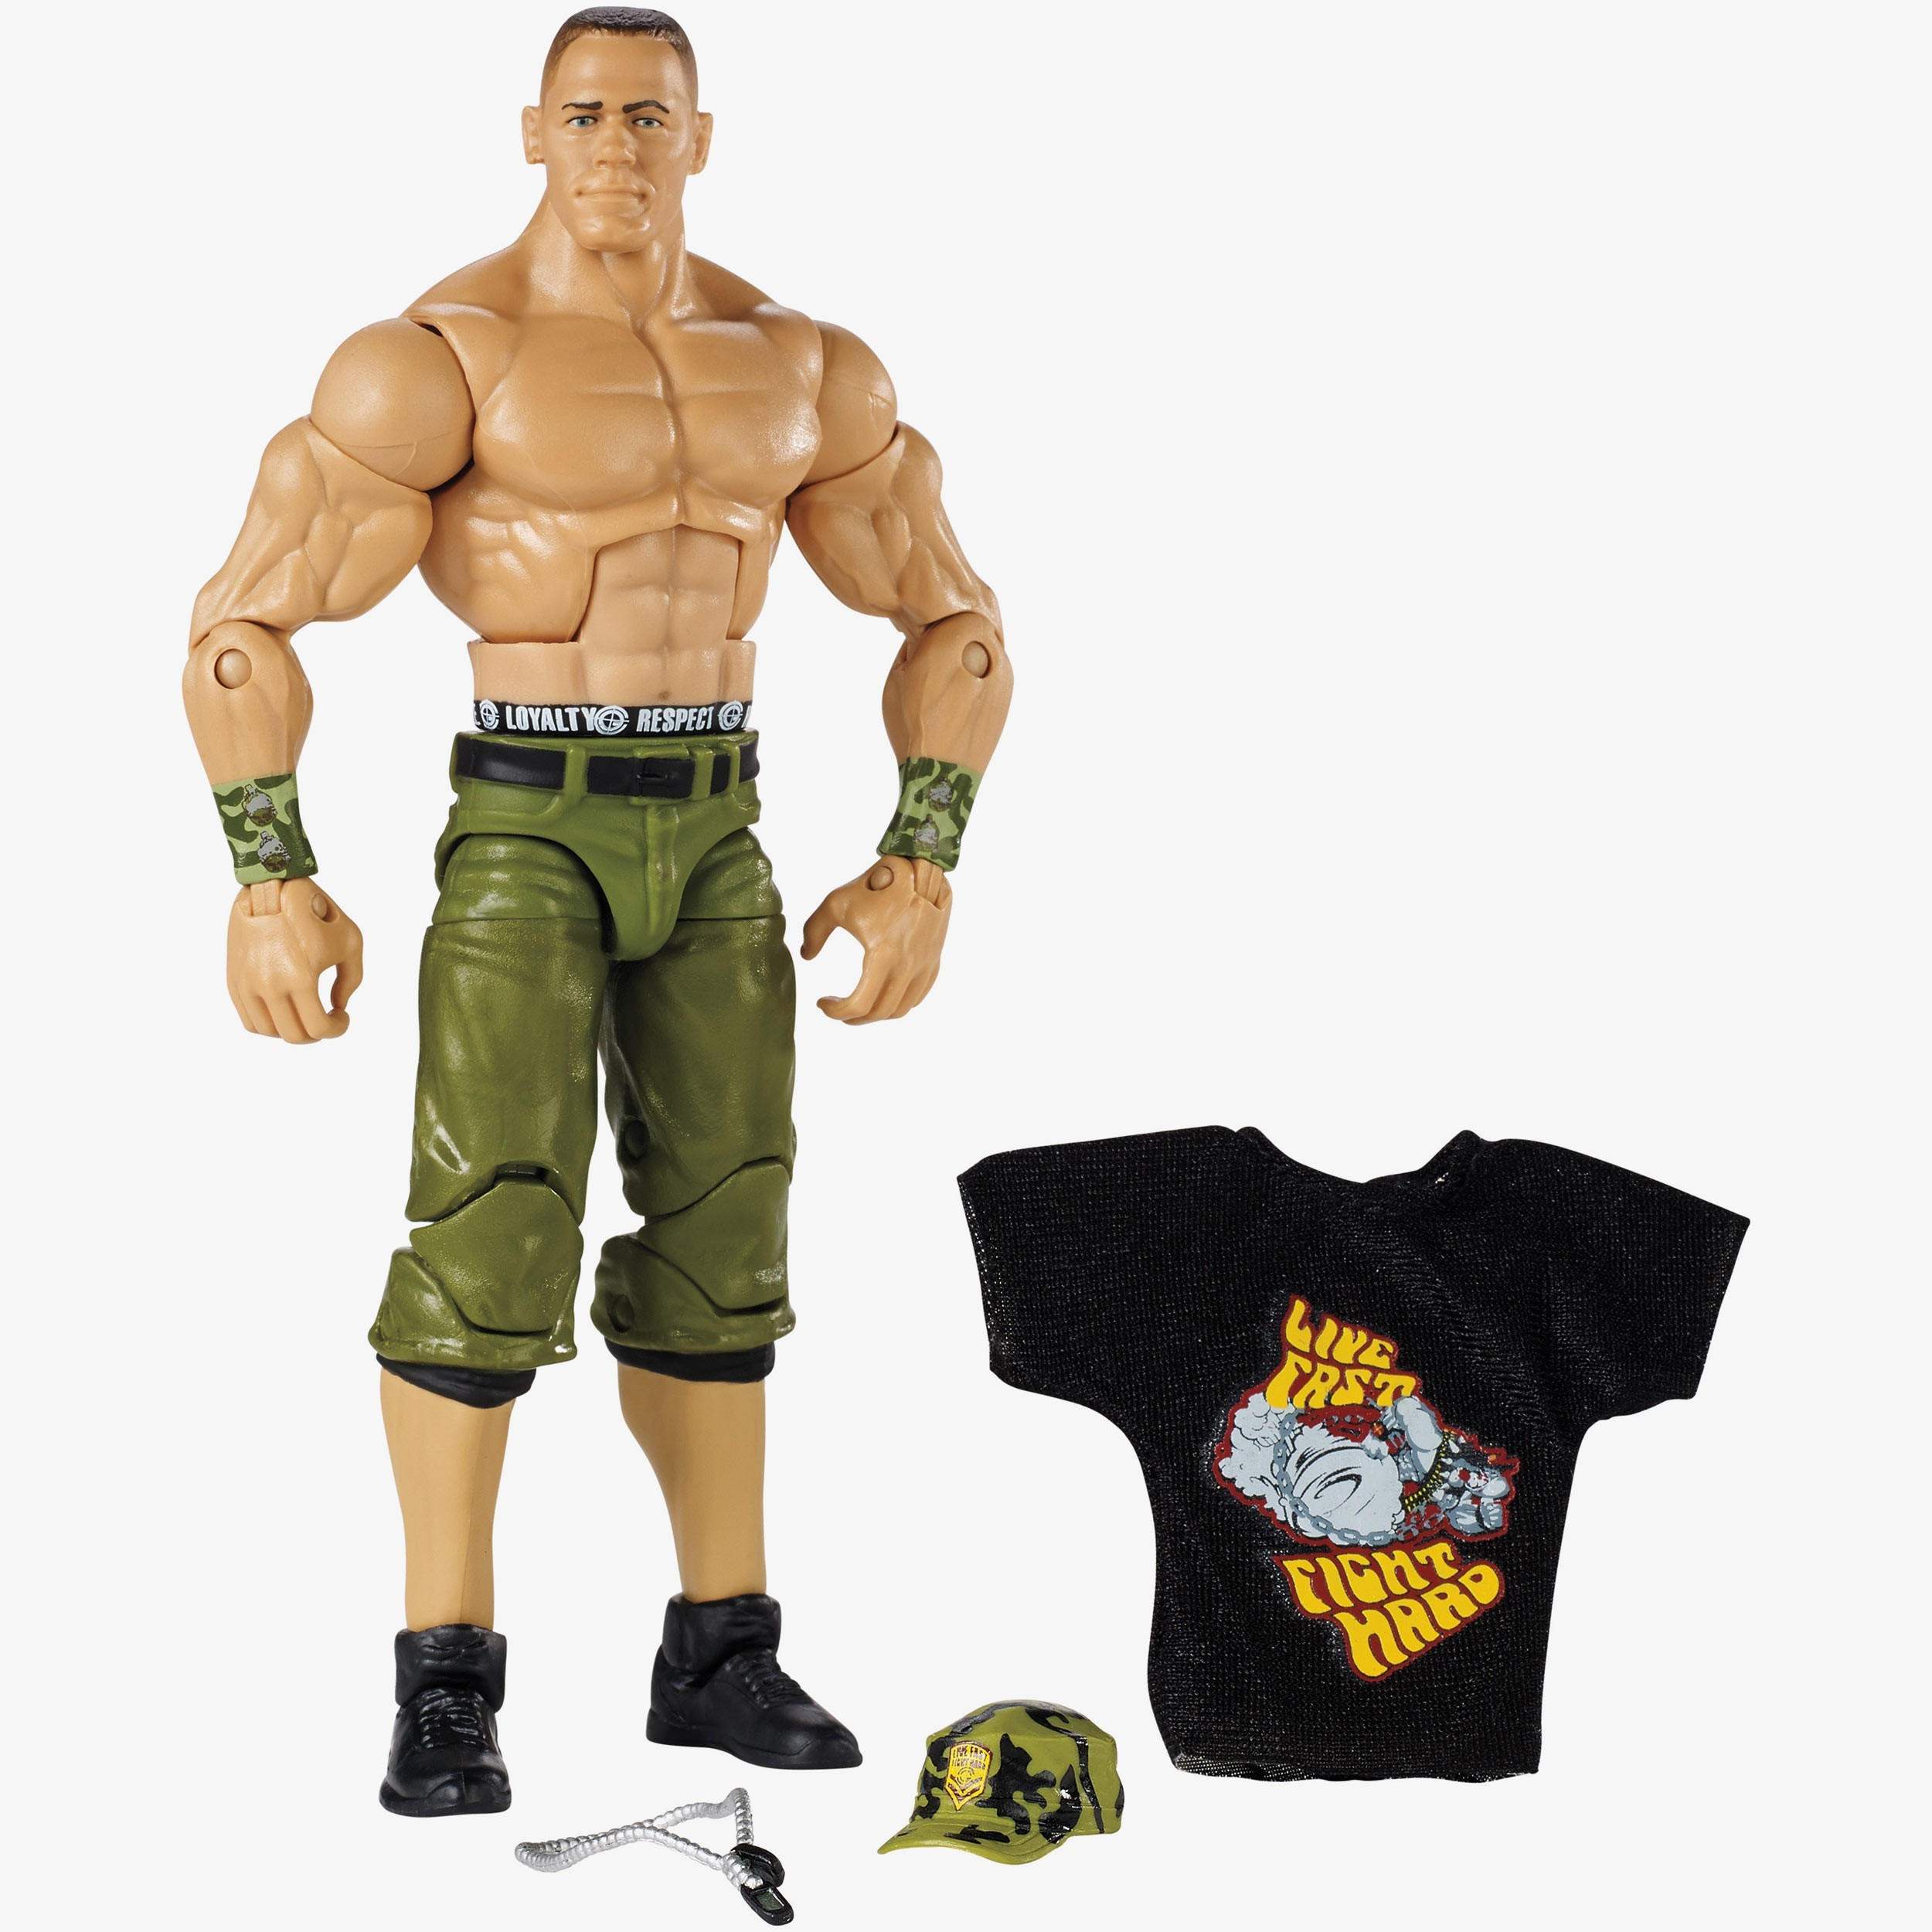 Image result for wrestlemania 34 mattel cena